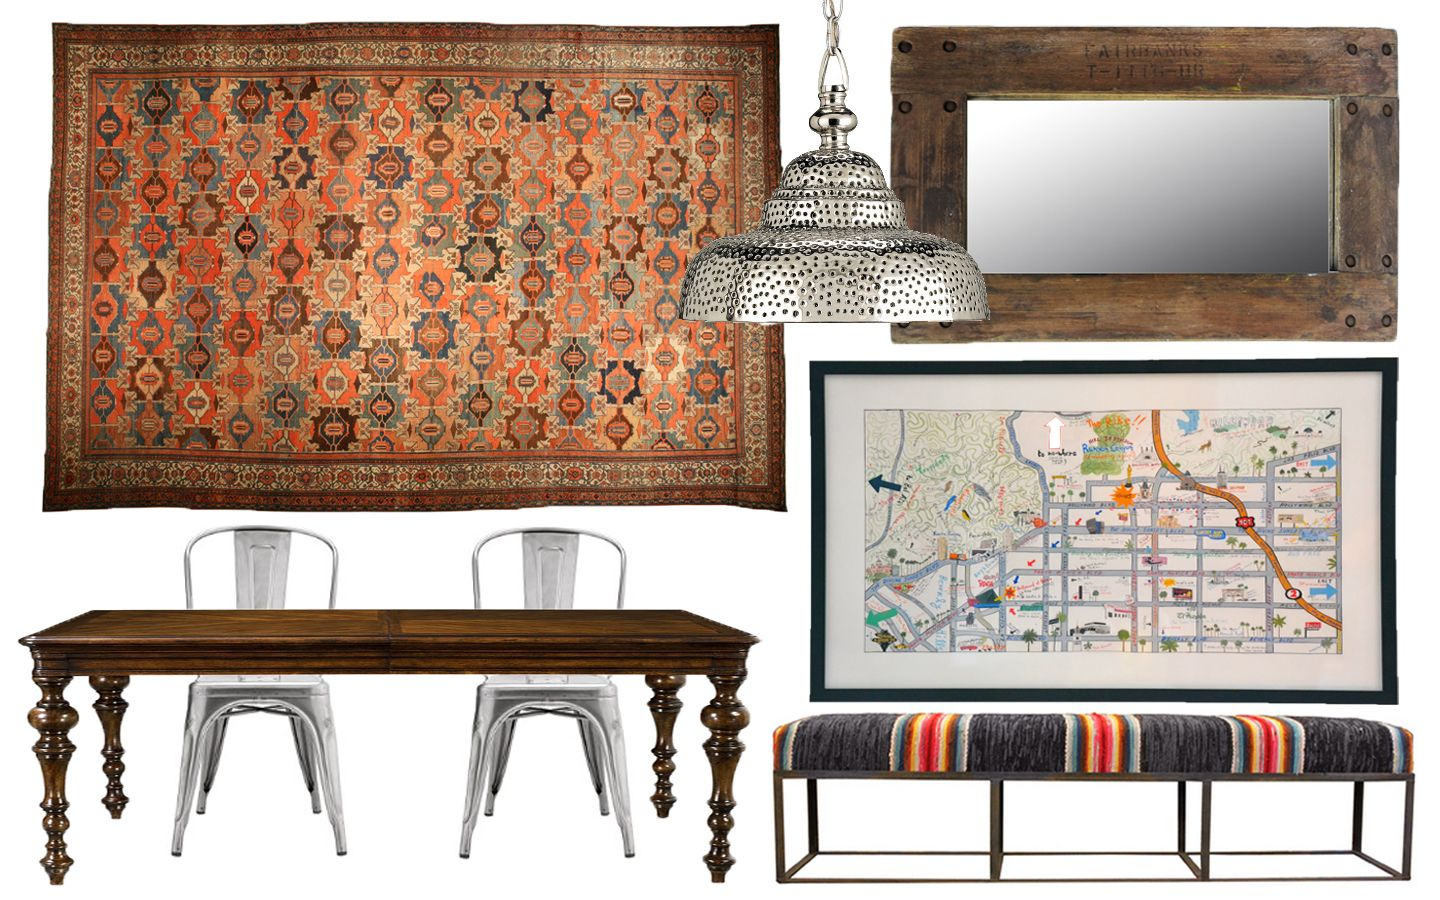 function of dining room | Eclectic Dual Function Dining Room/Office for Small City ...